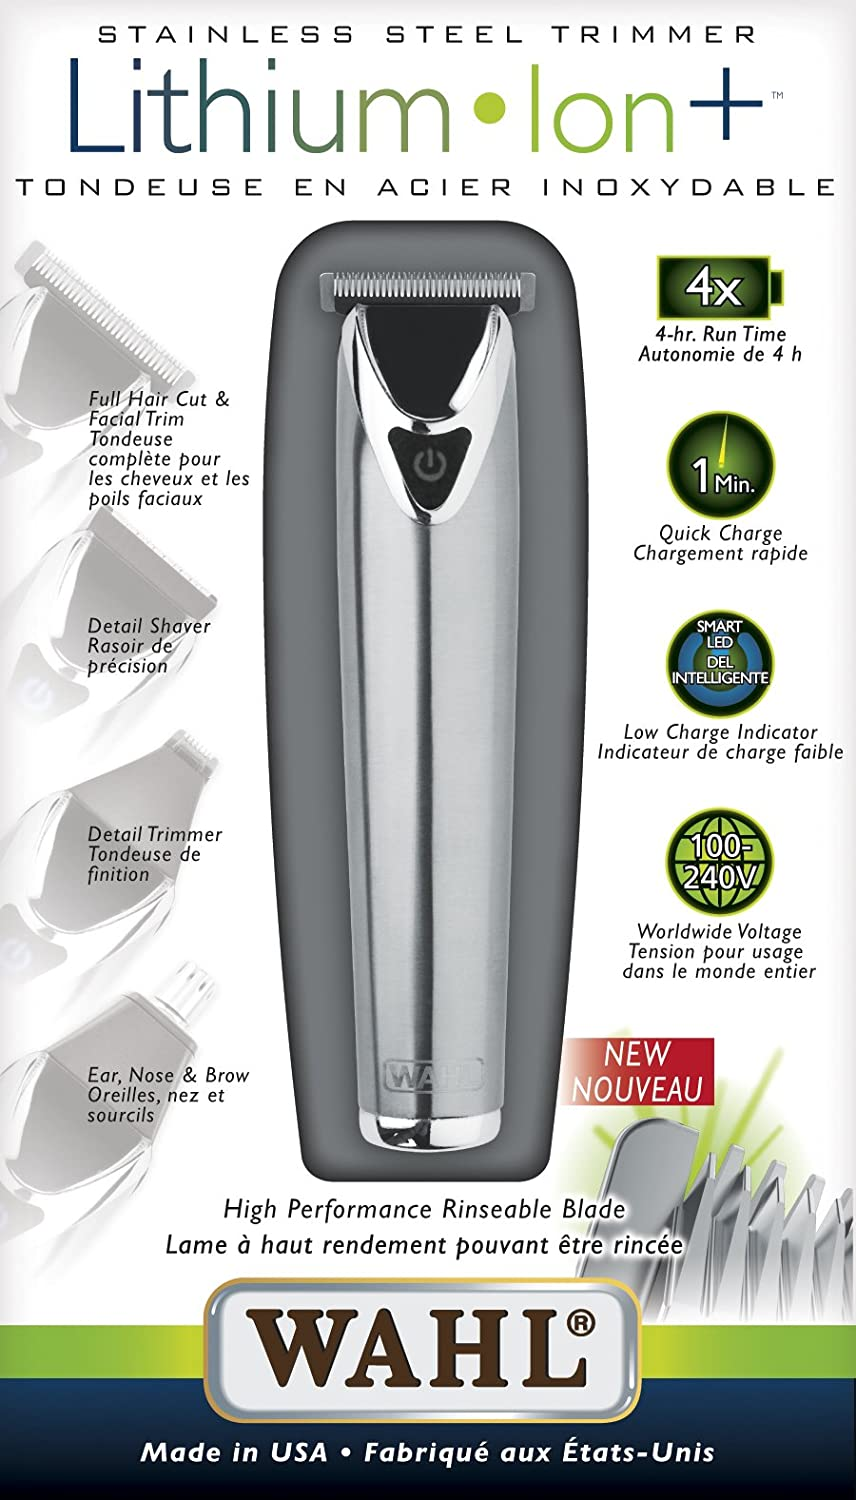 Wahl Lithium Ion Stainless Steel Trimmer (Silver) 3205